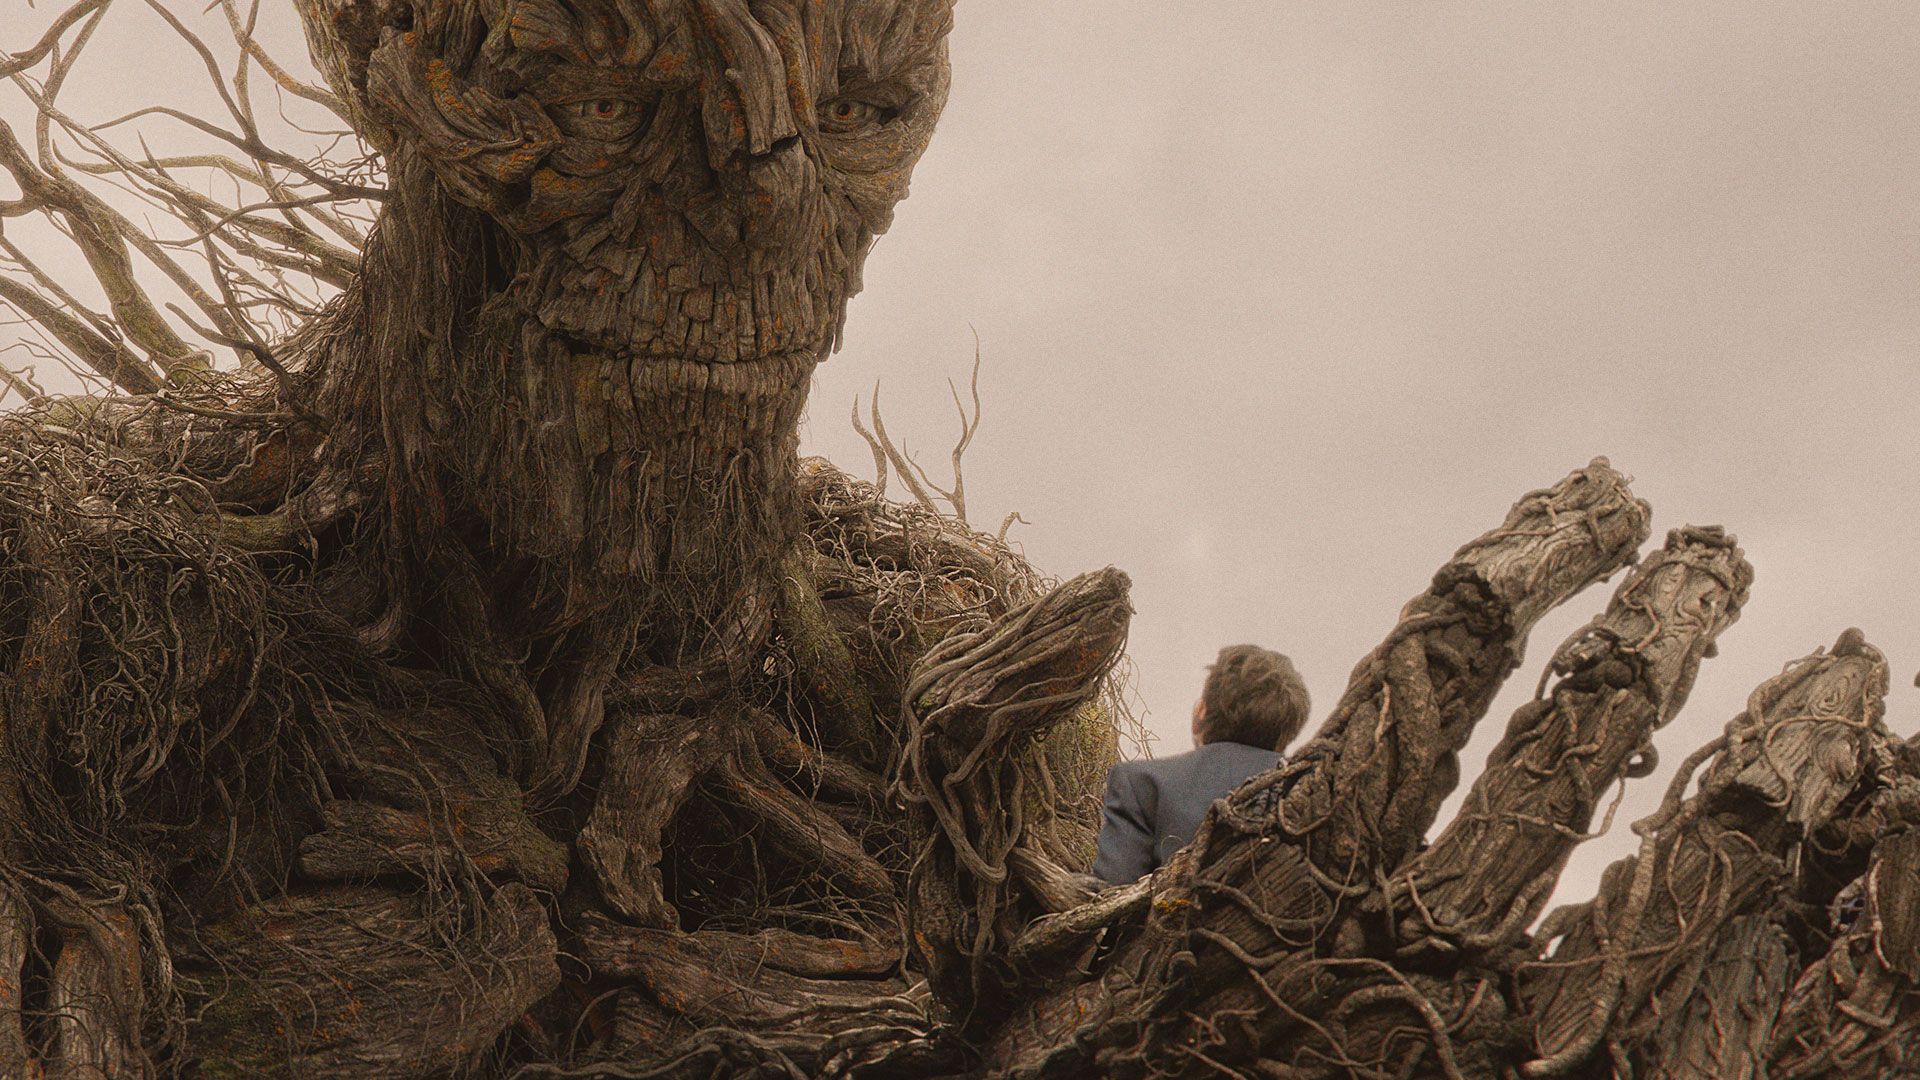 Unlikely form of therapy when A Monster Calls